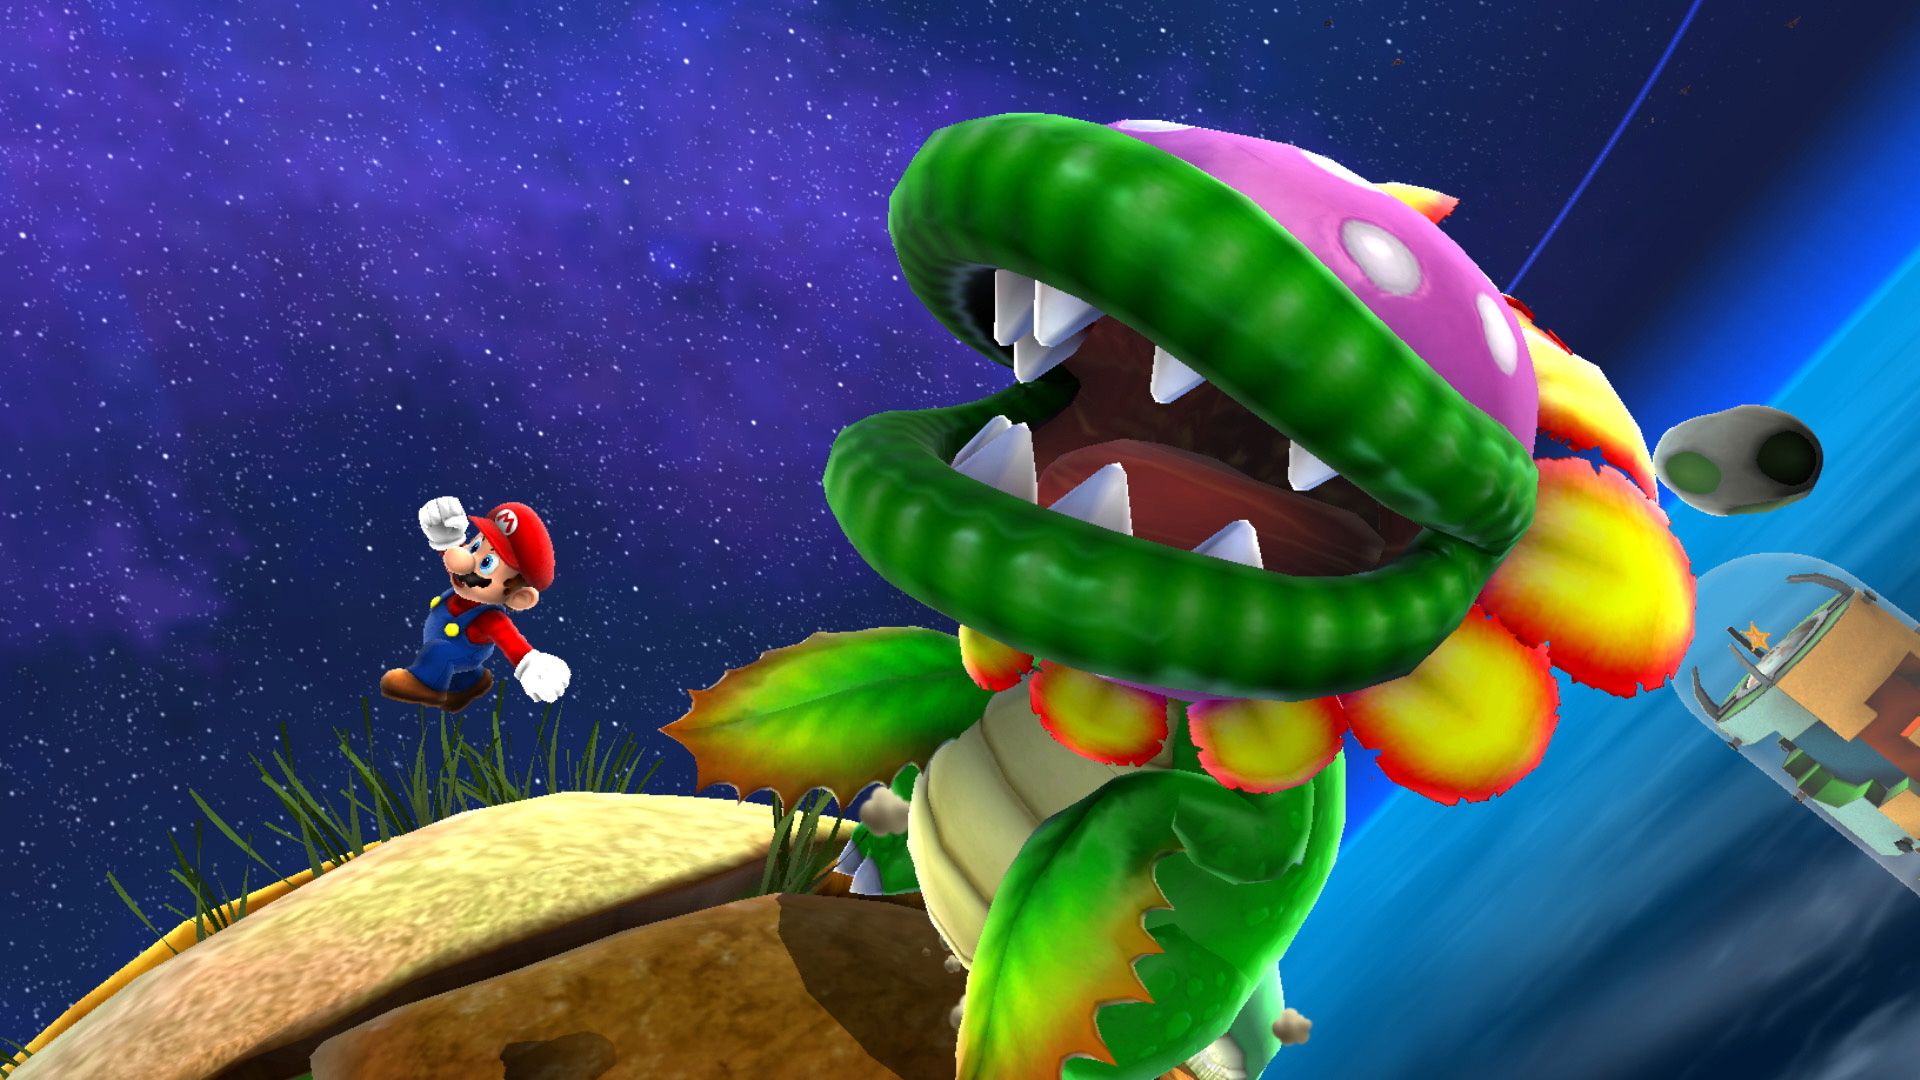 Super Mario 3D All-Stars (Mario Galaxy)